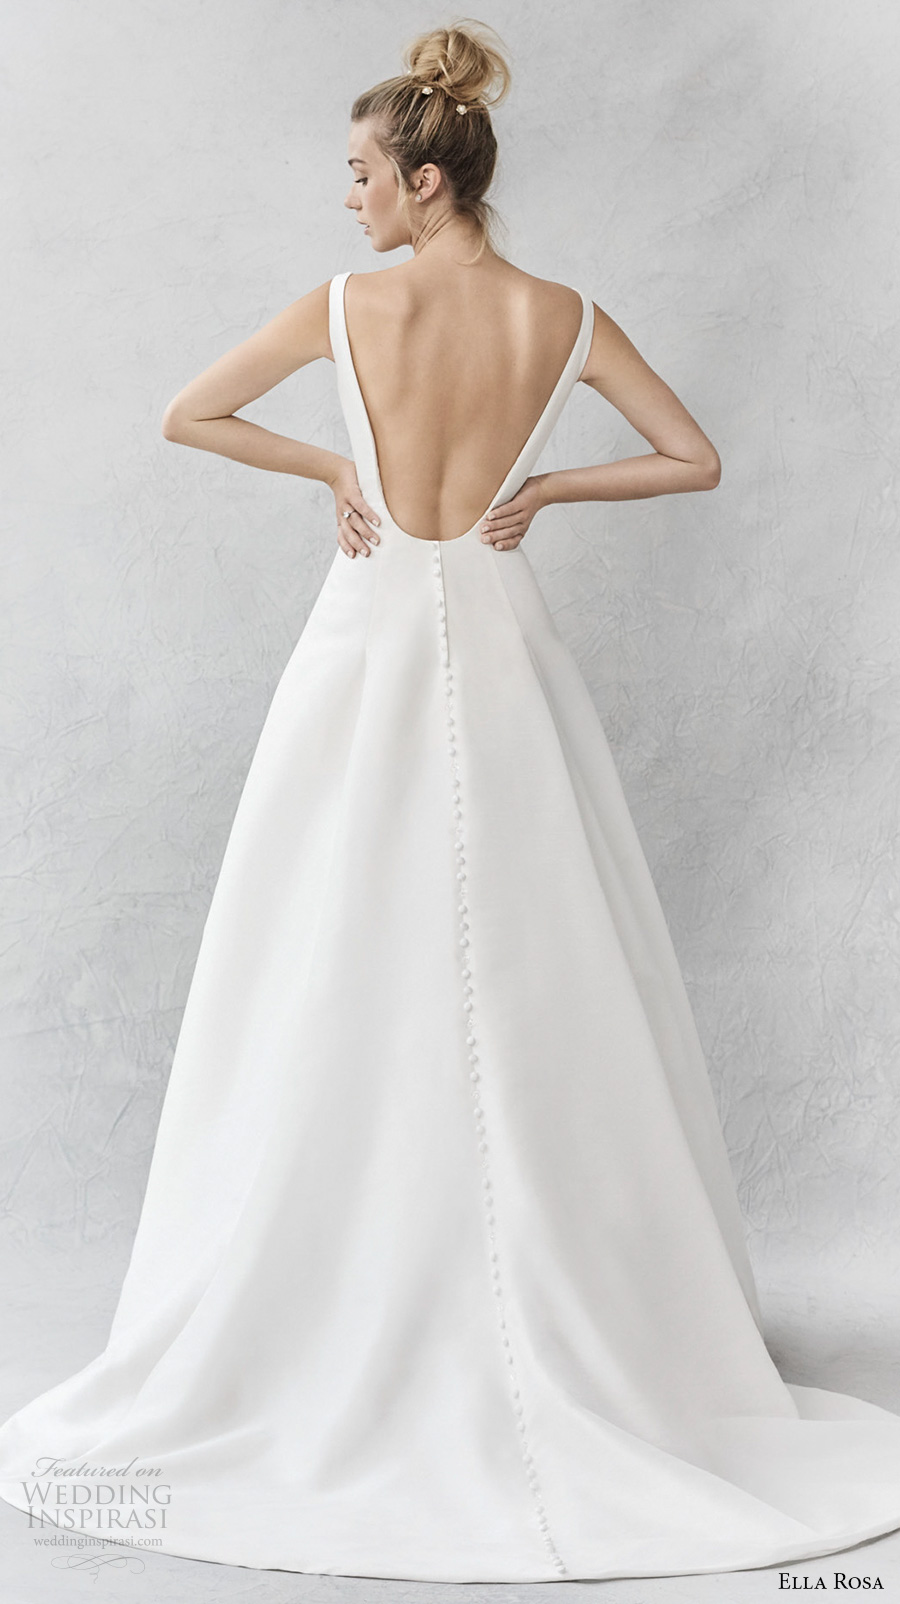 ella rosa spring 2017 bridal sleeveless bateau neck simple clean a  line wedding dress open ultra low back sweep train (375) bv